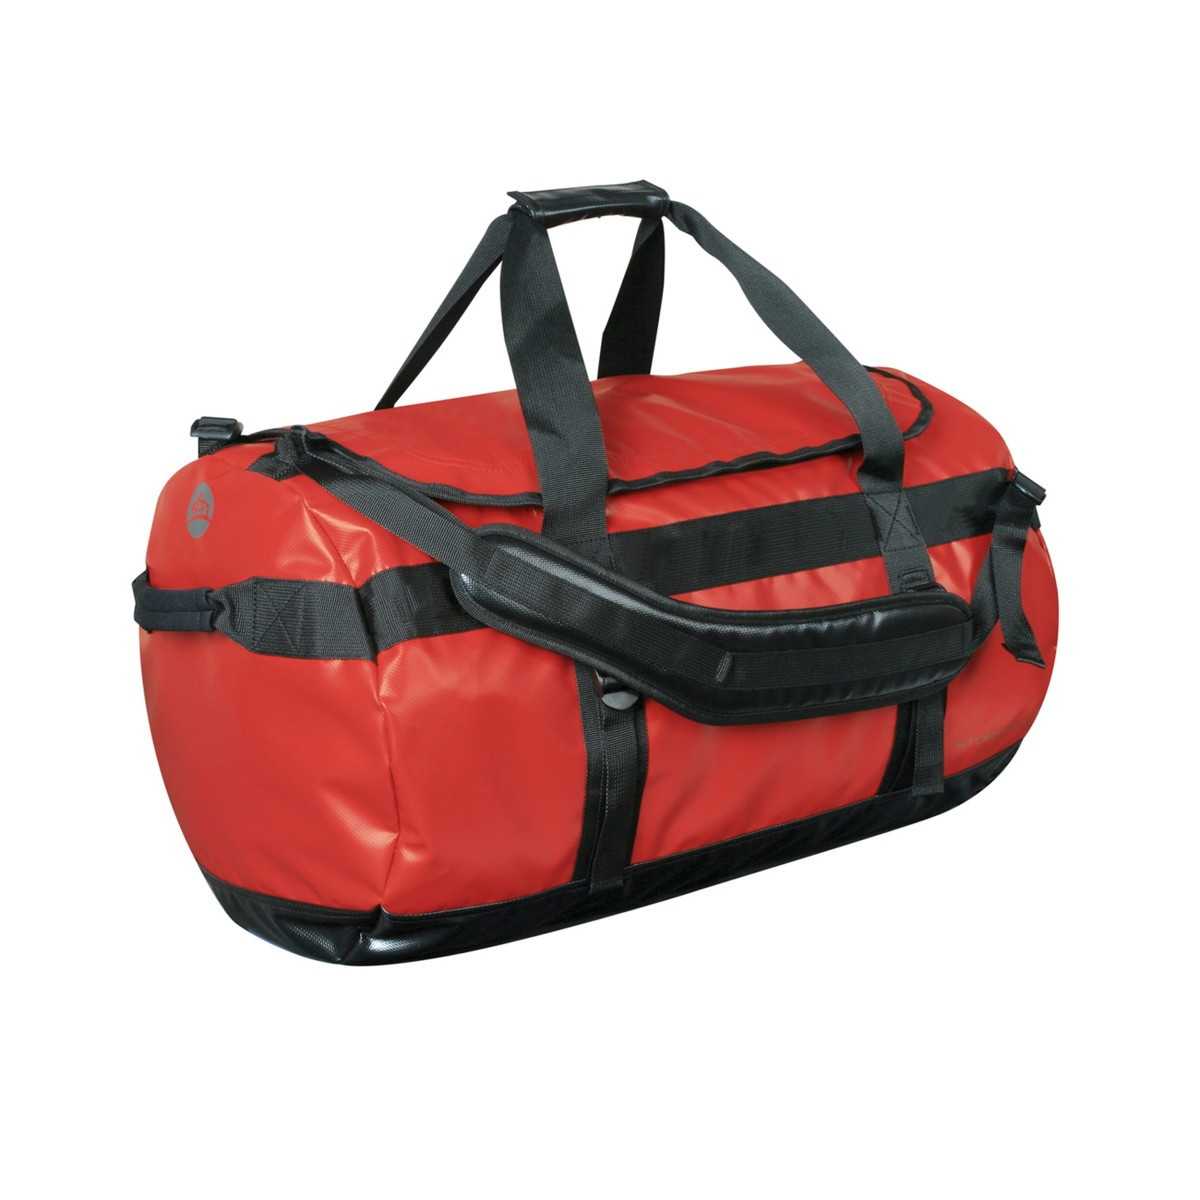 Stormtech Waterproof Gear Holdall Bag (Large) (Pack of 2) (One Size) (Red/Black)